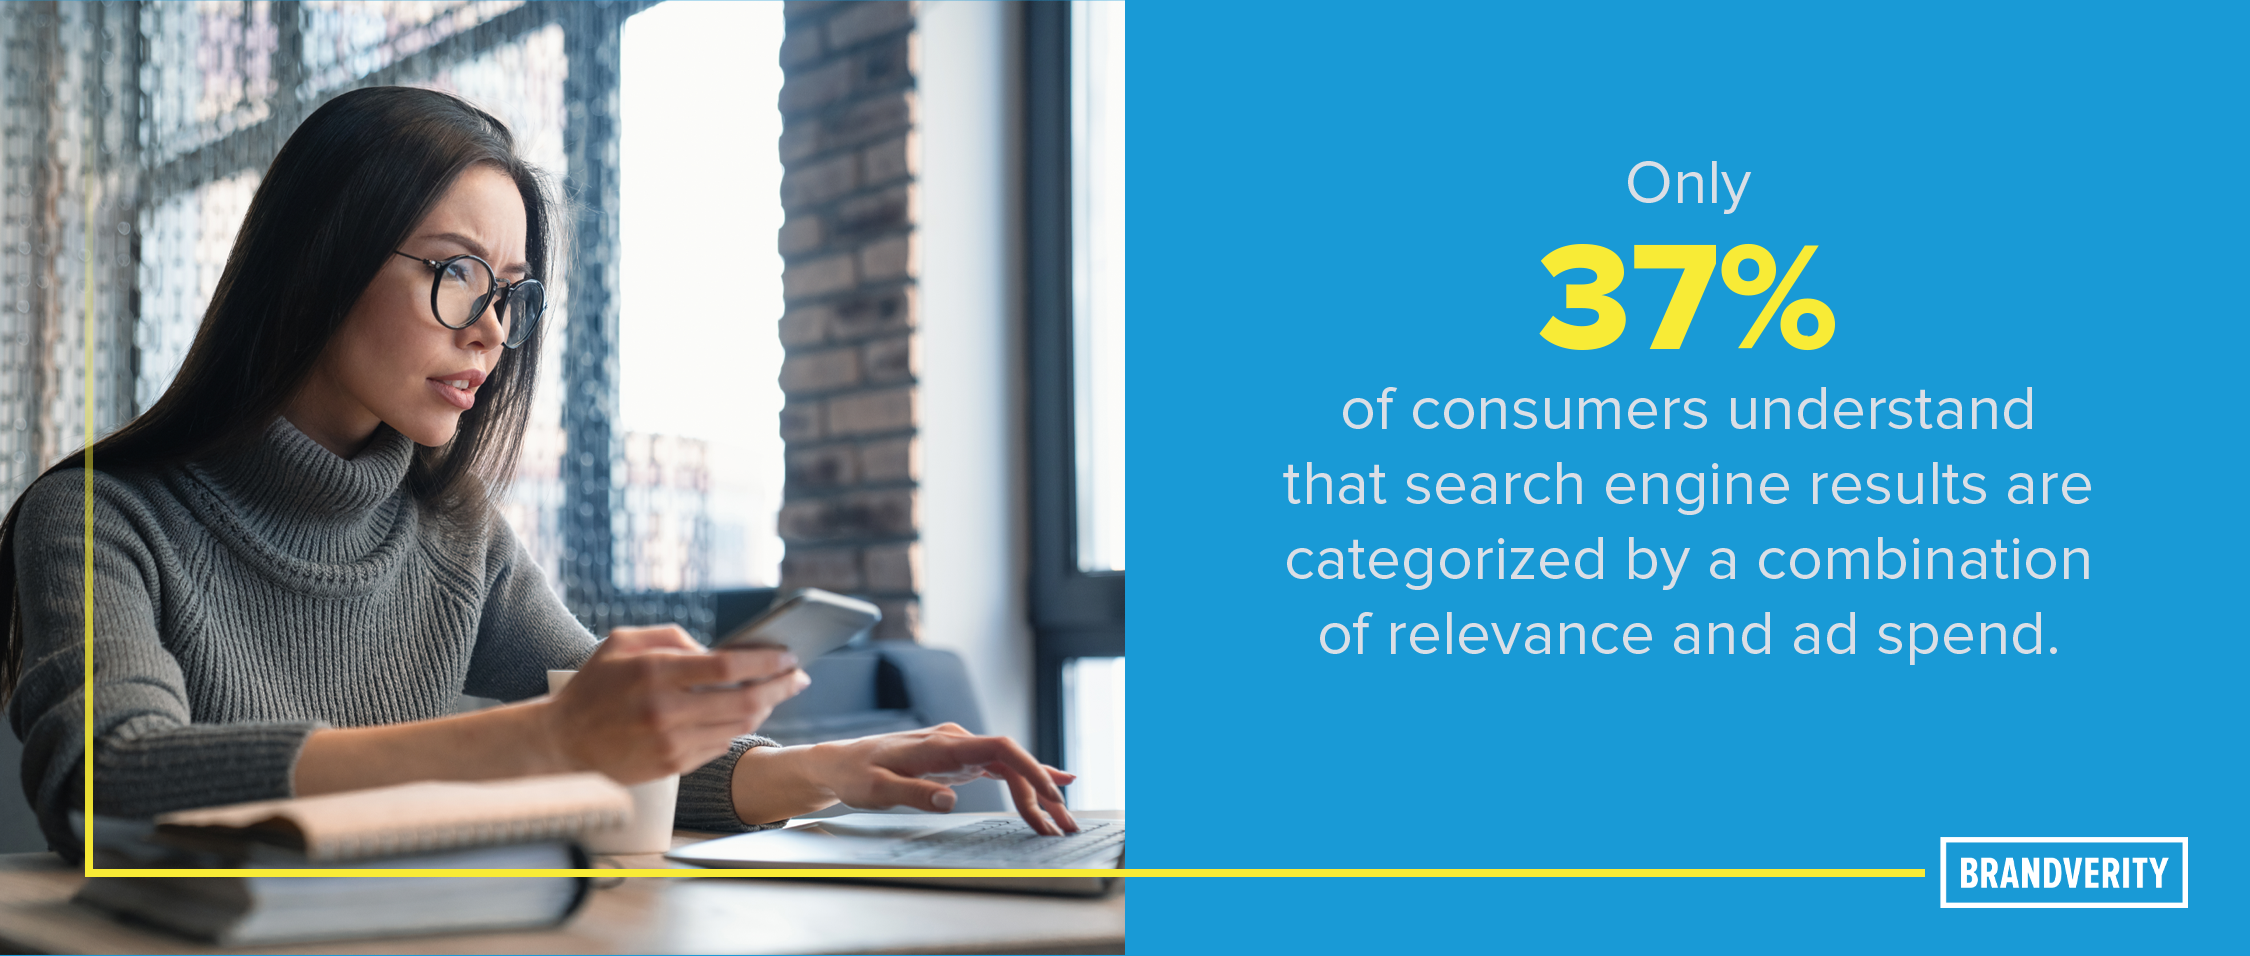 Only 37% of consumers understand that search engine results are categorized by a combination of relevance and ad spend.